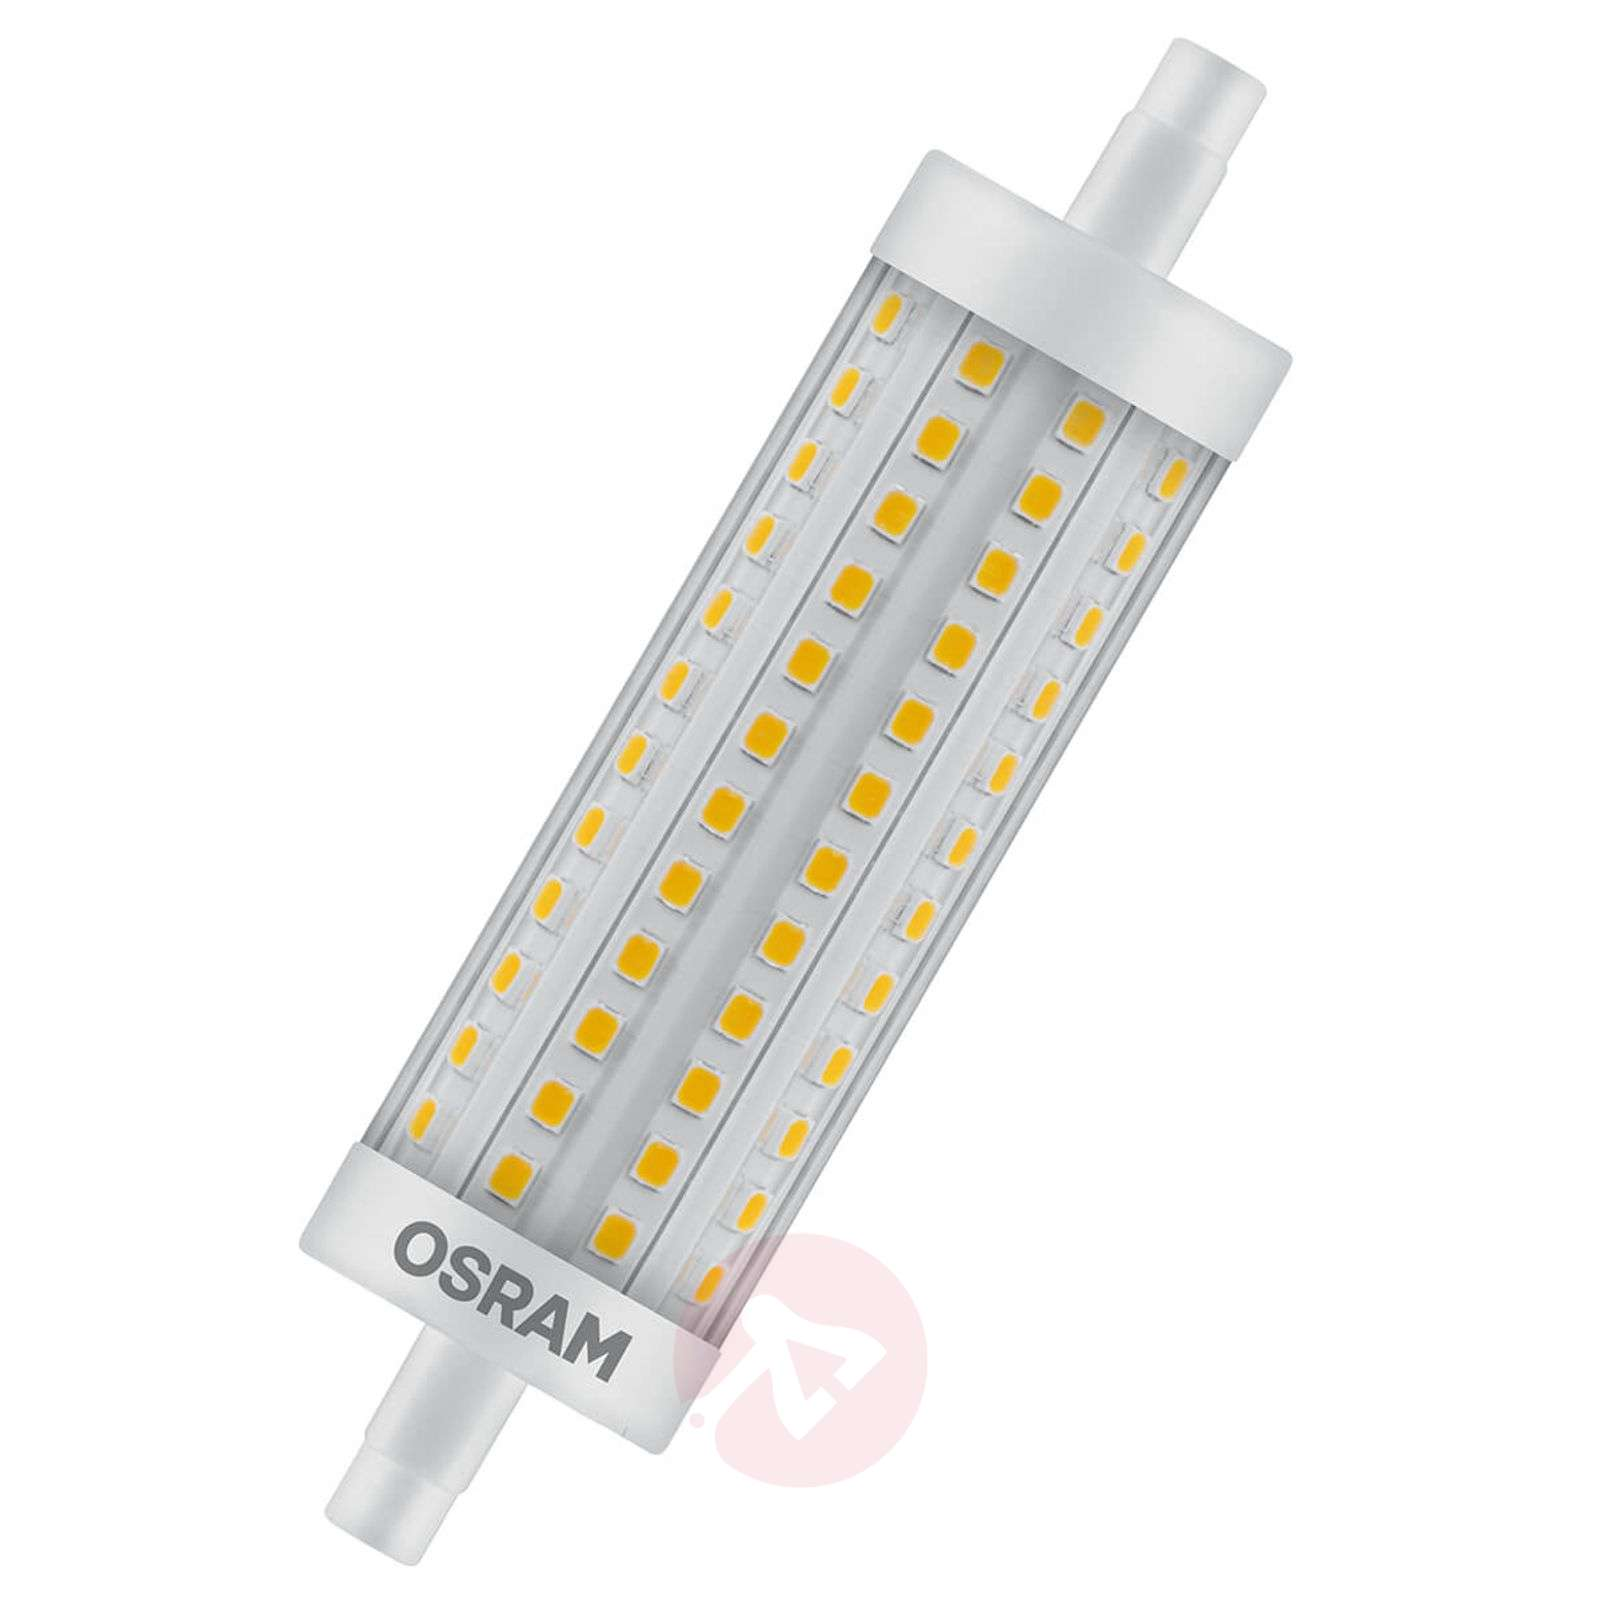 LED tube lamp R7s 15W, warm white, dimmable-7262073-01